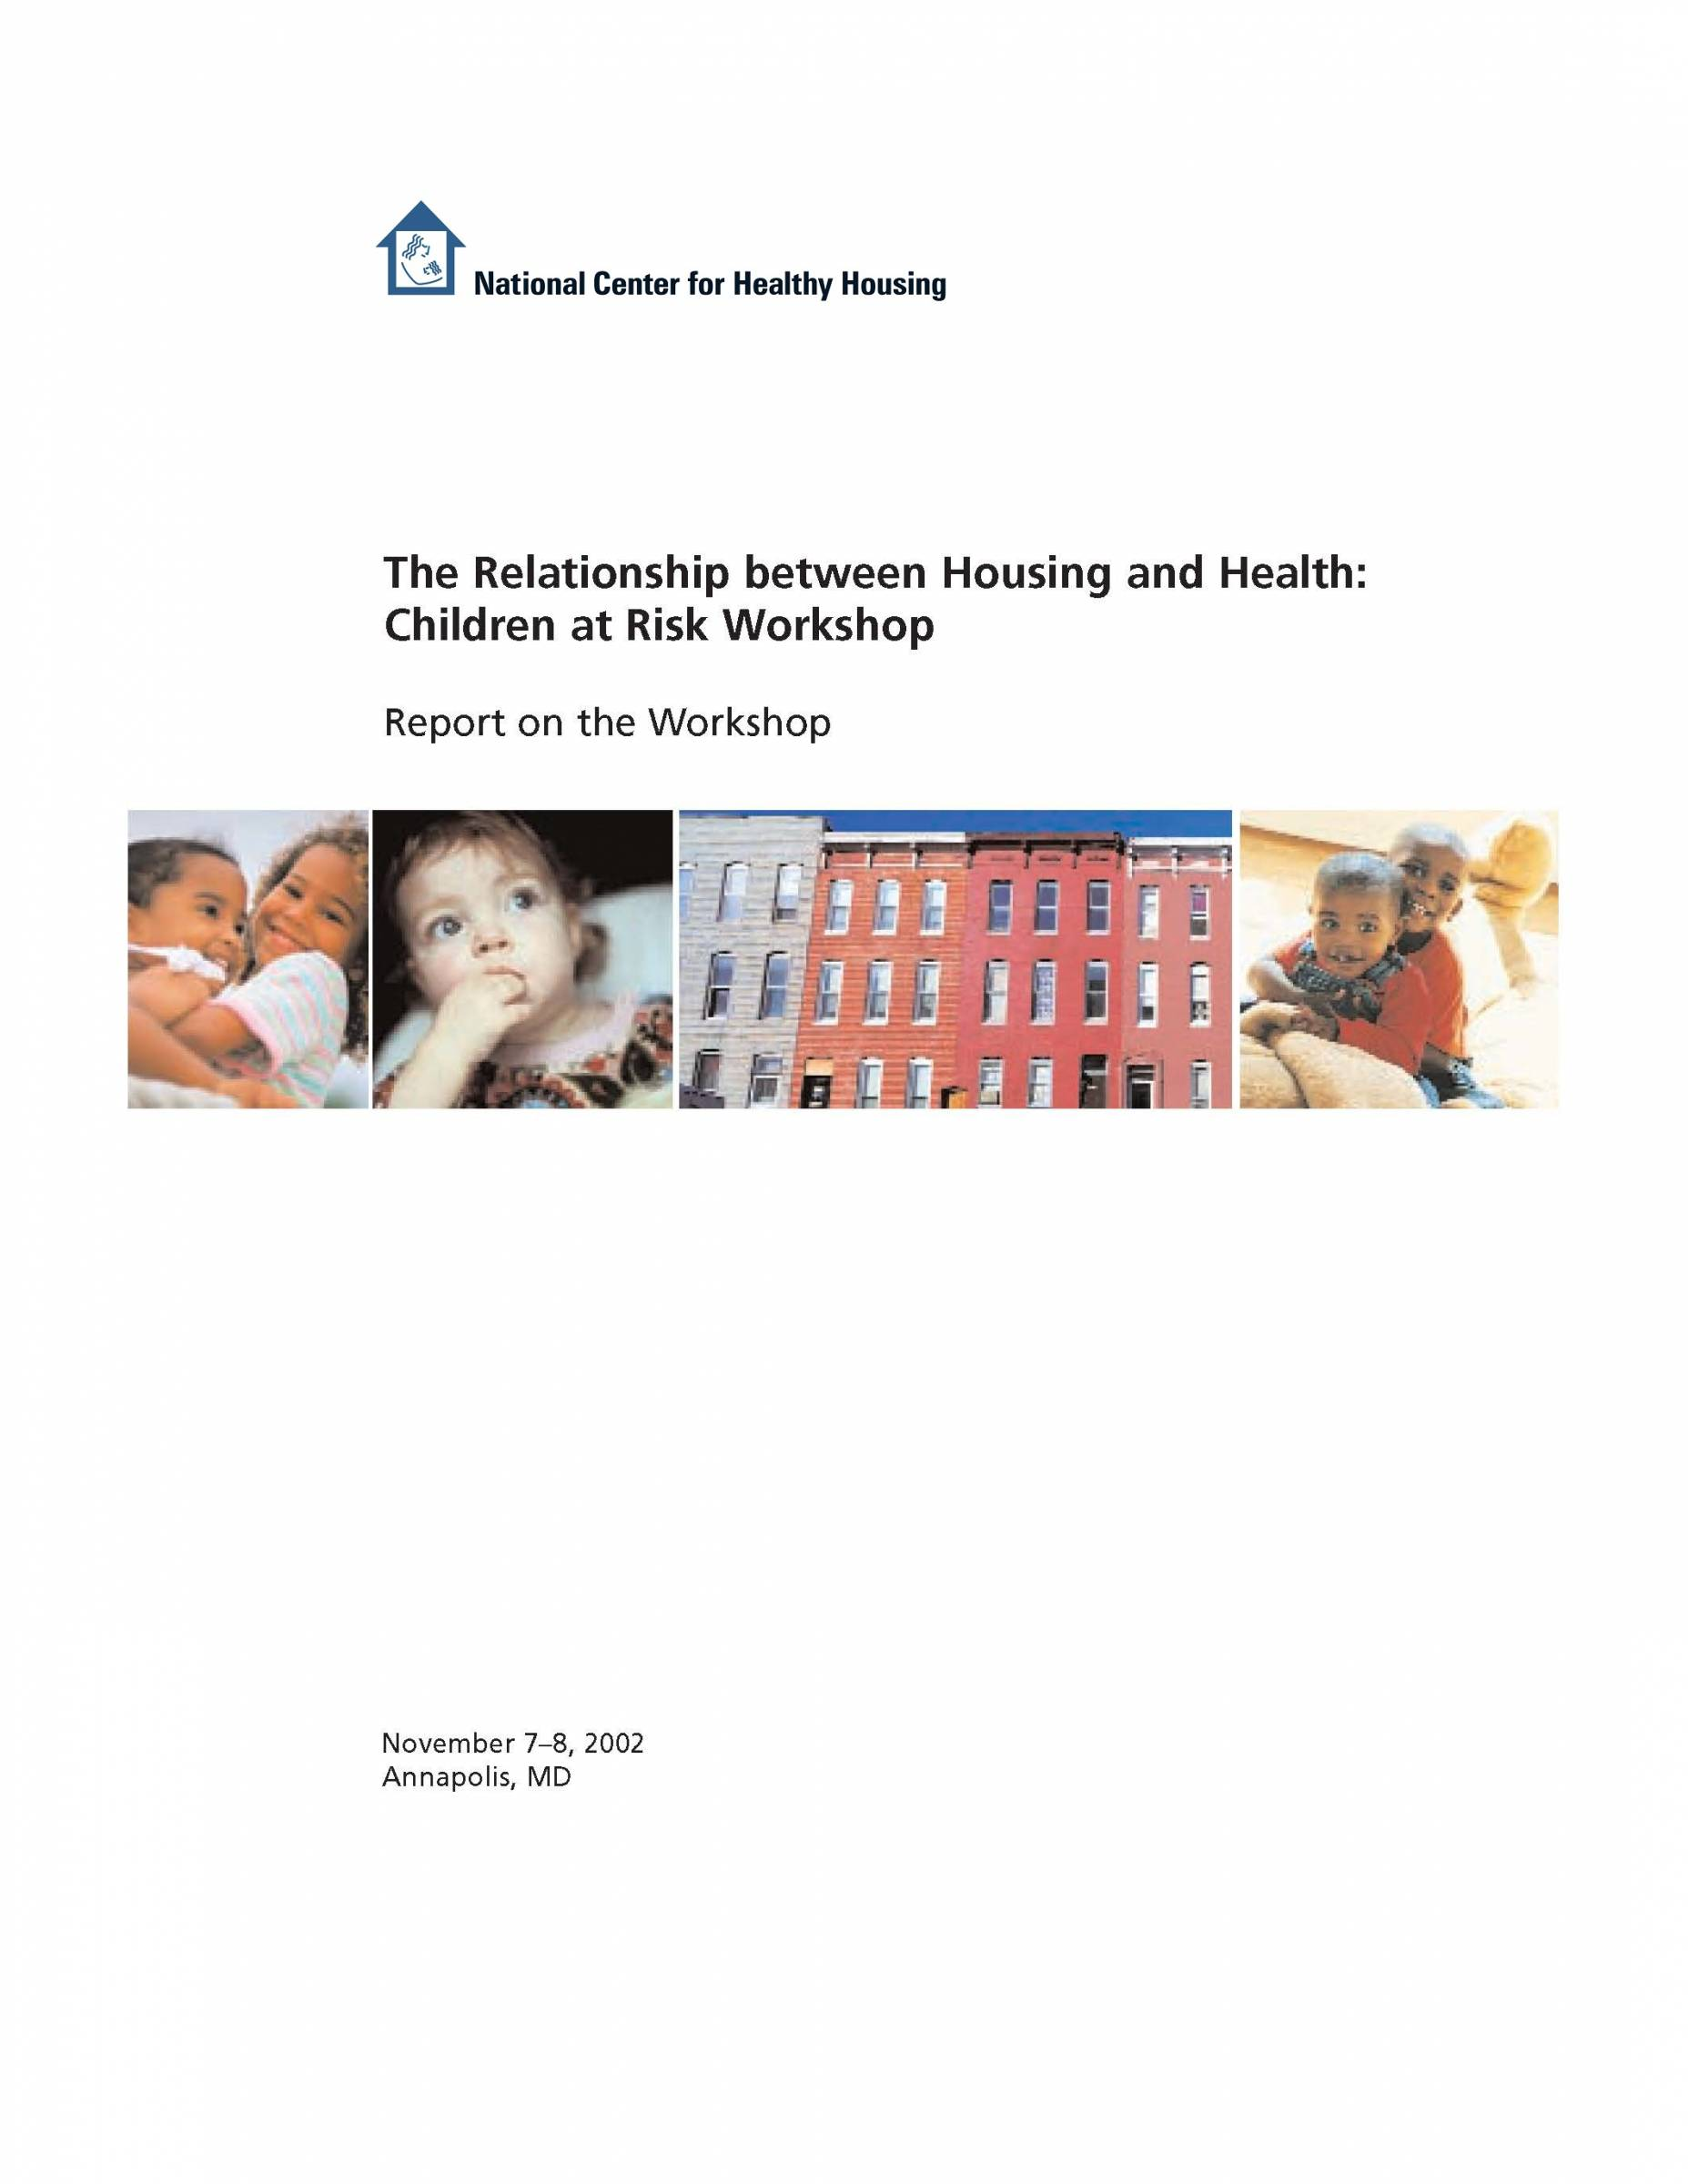 The Relationship between Housing and Health: Children at Risk Workshop – Report on the Workshop